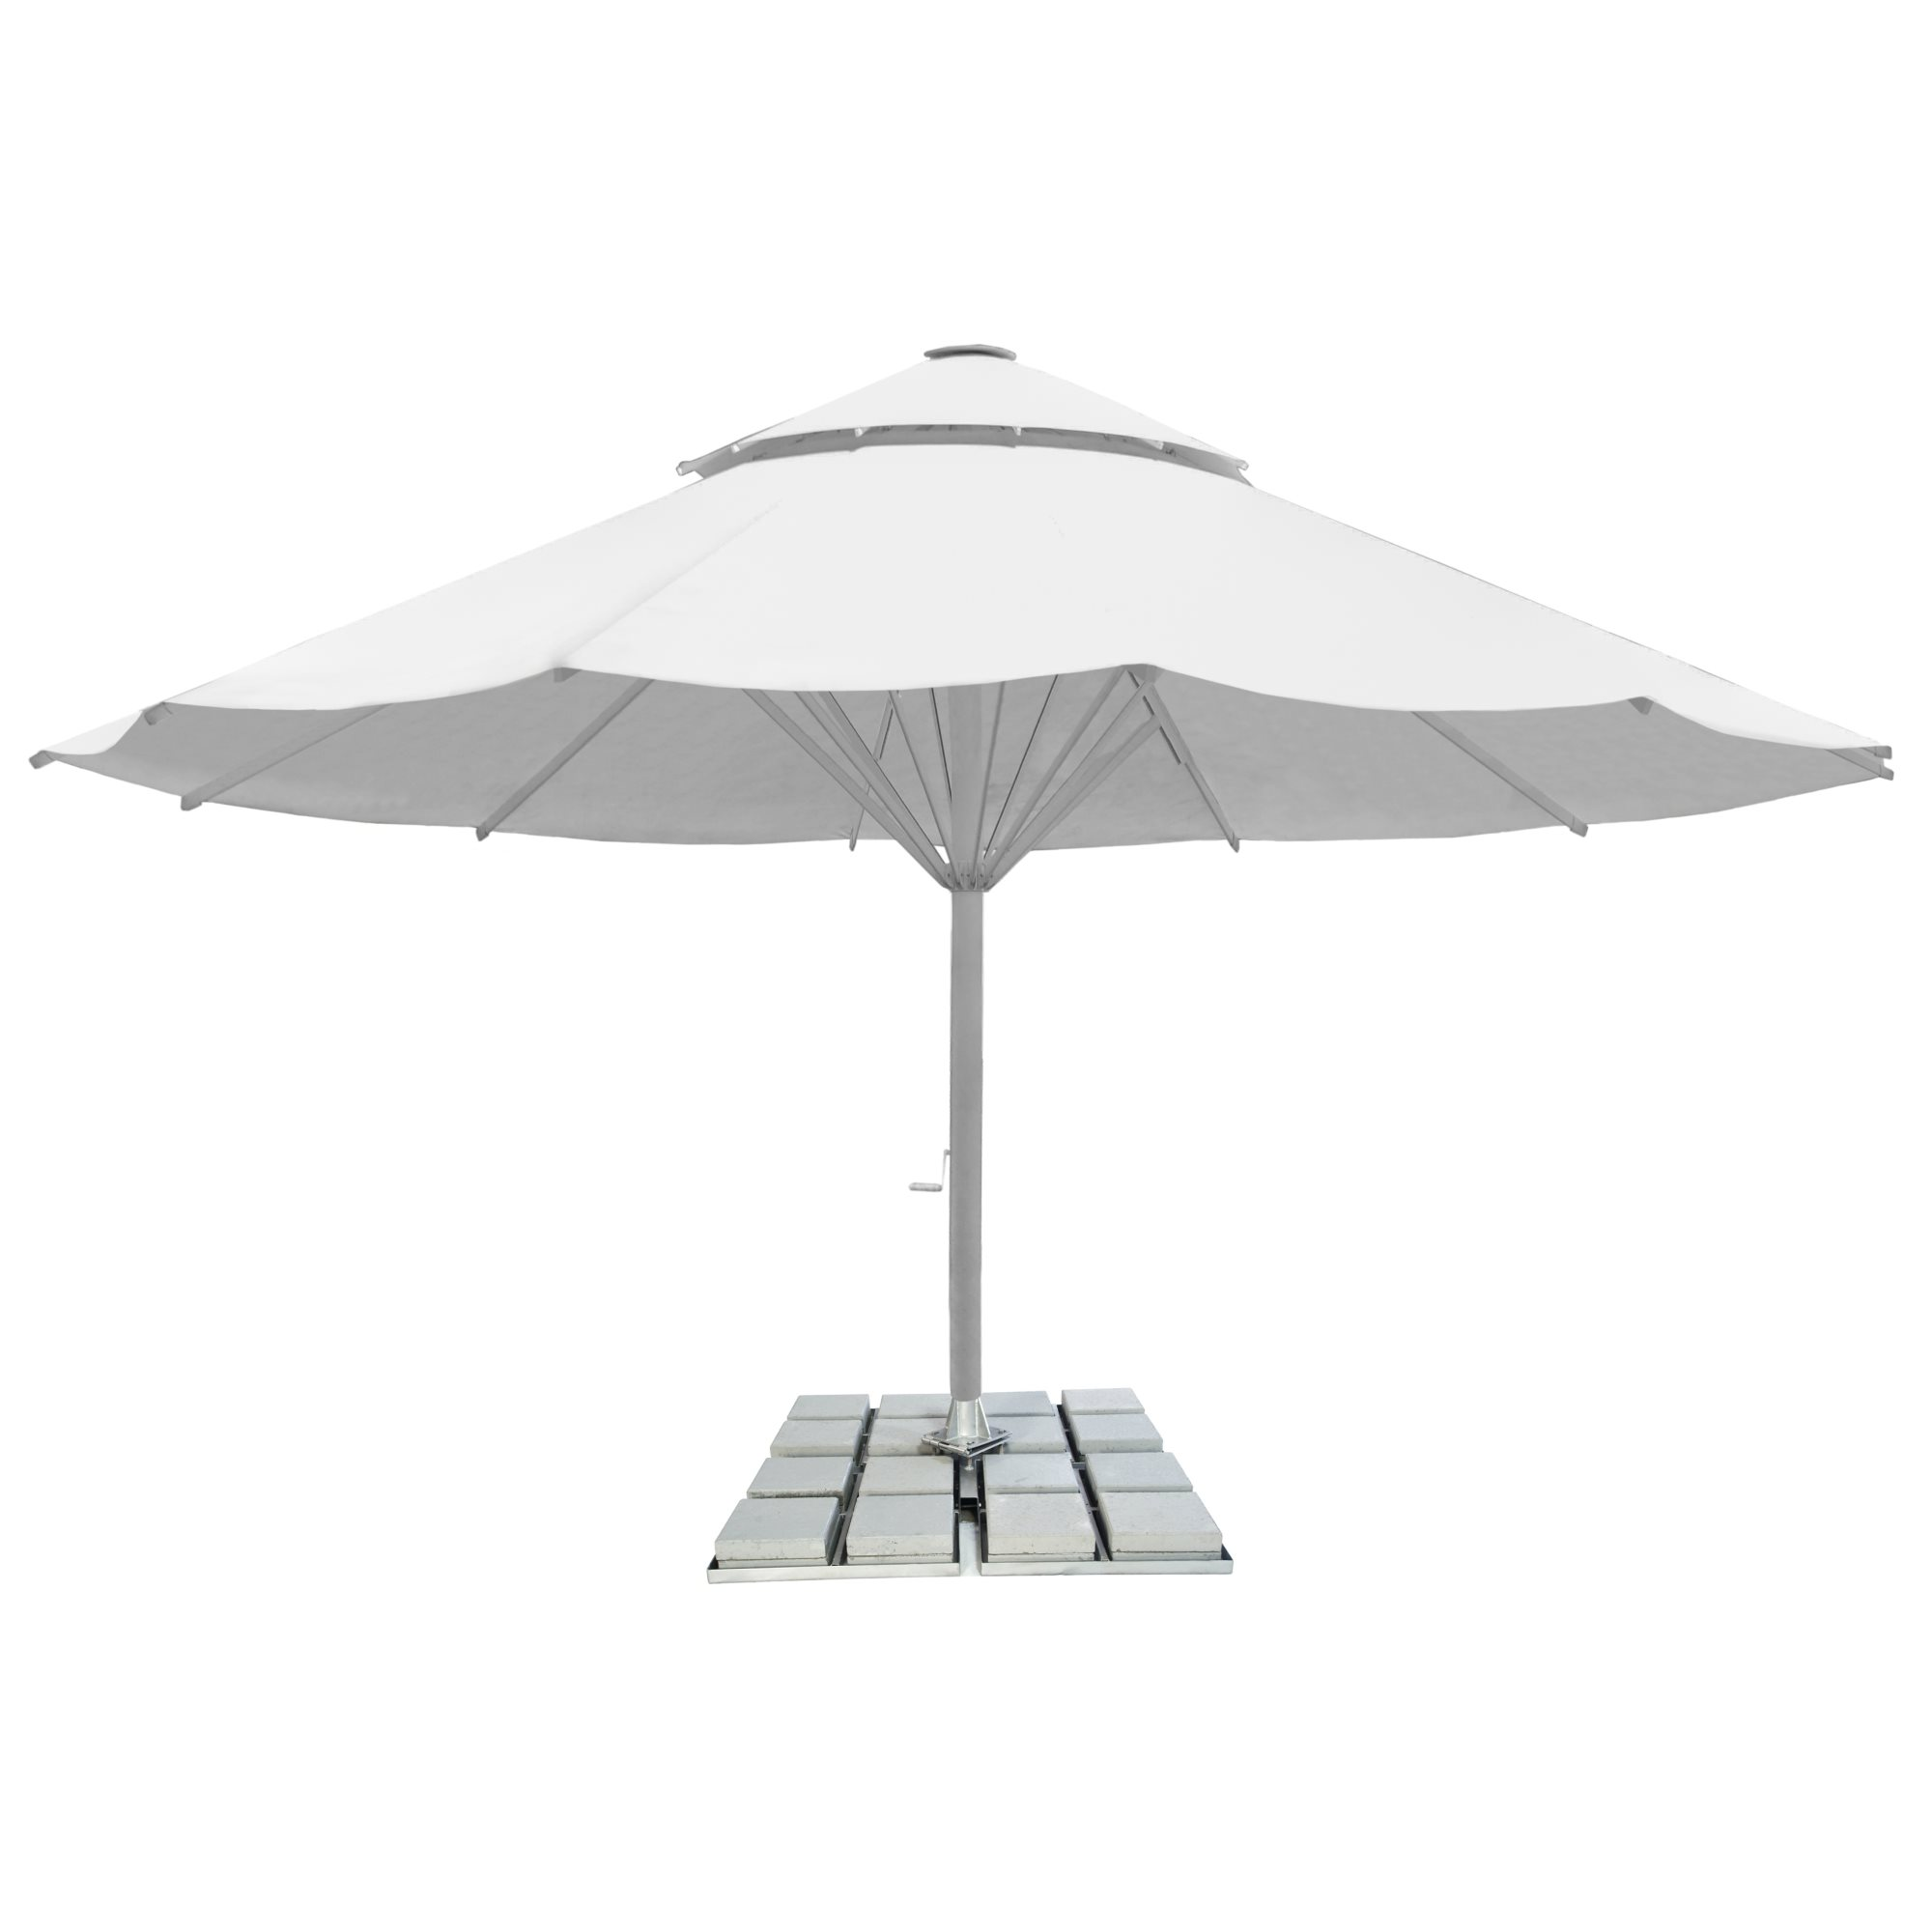 1. Giant Parasol 12-sided 8m - with 2nd roof